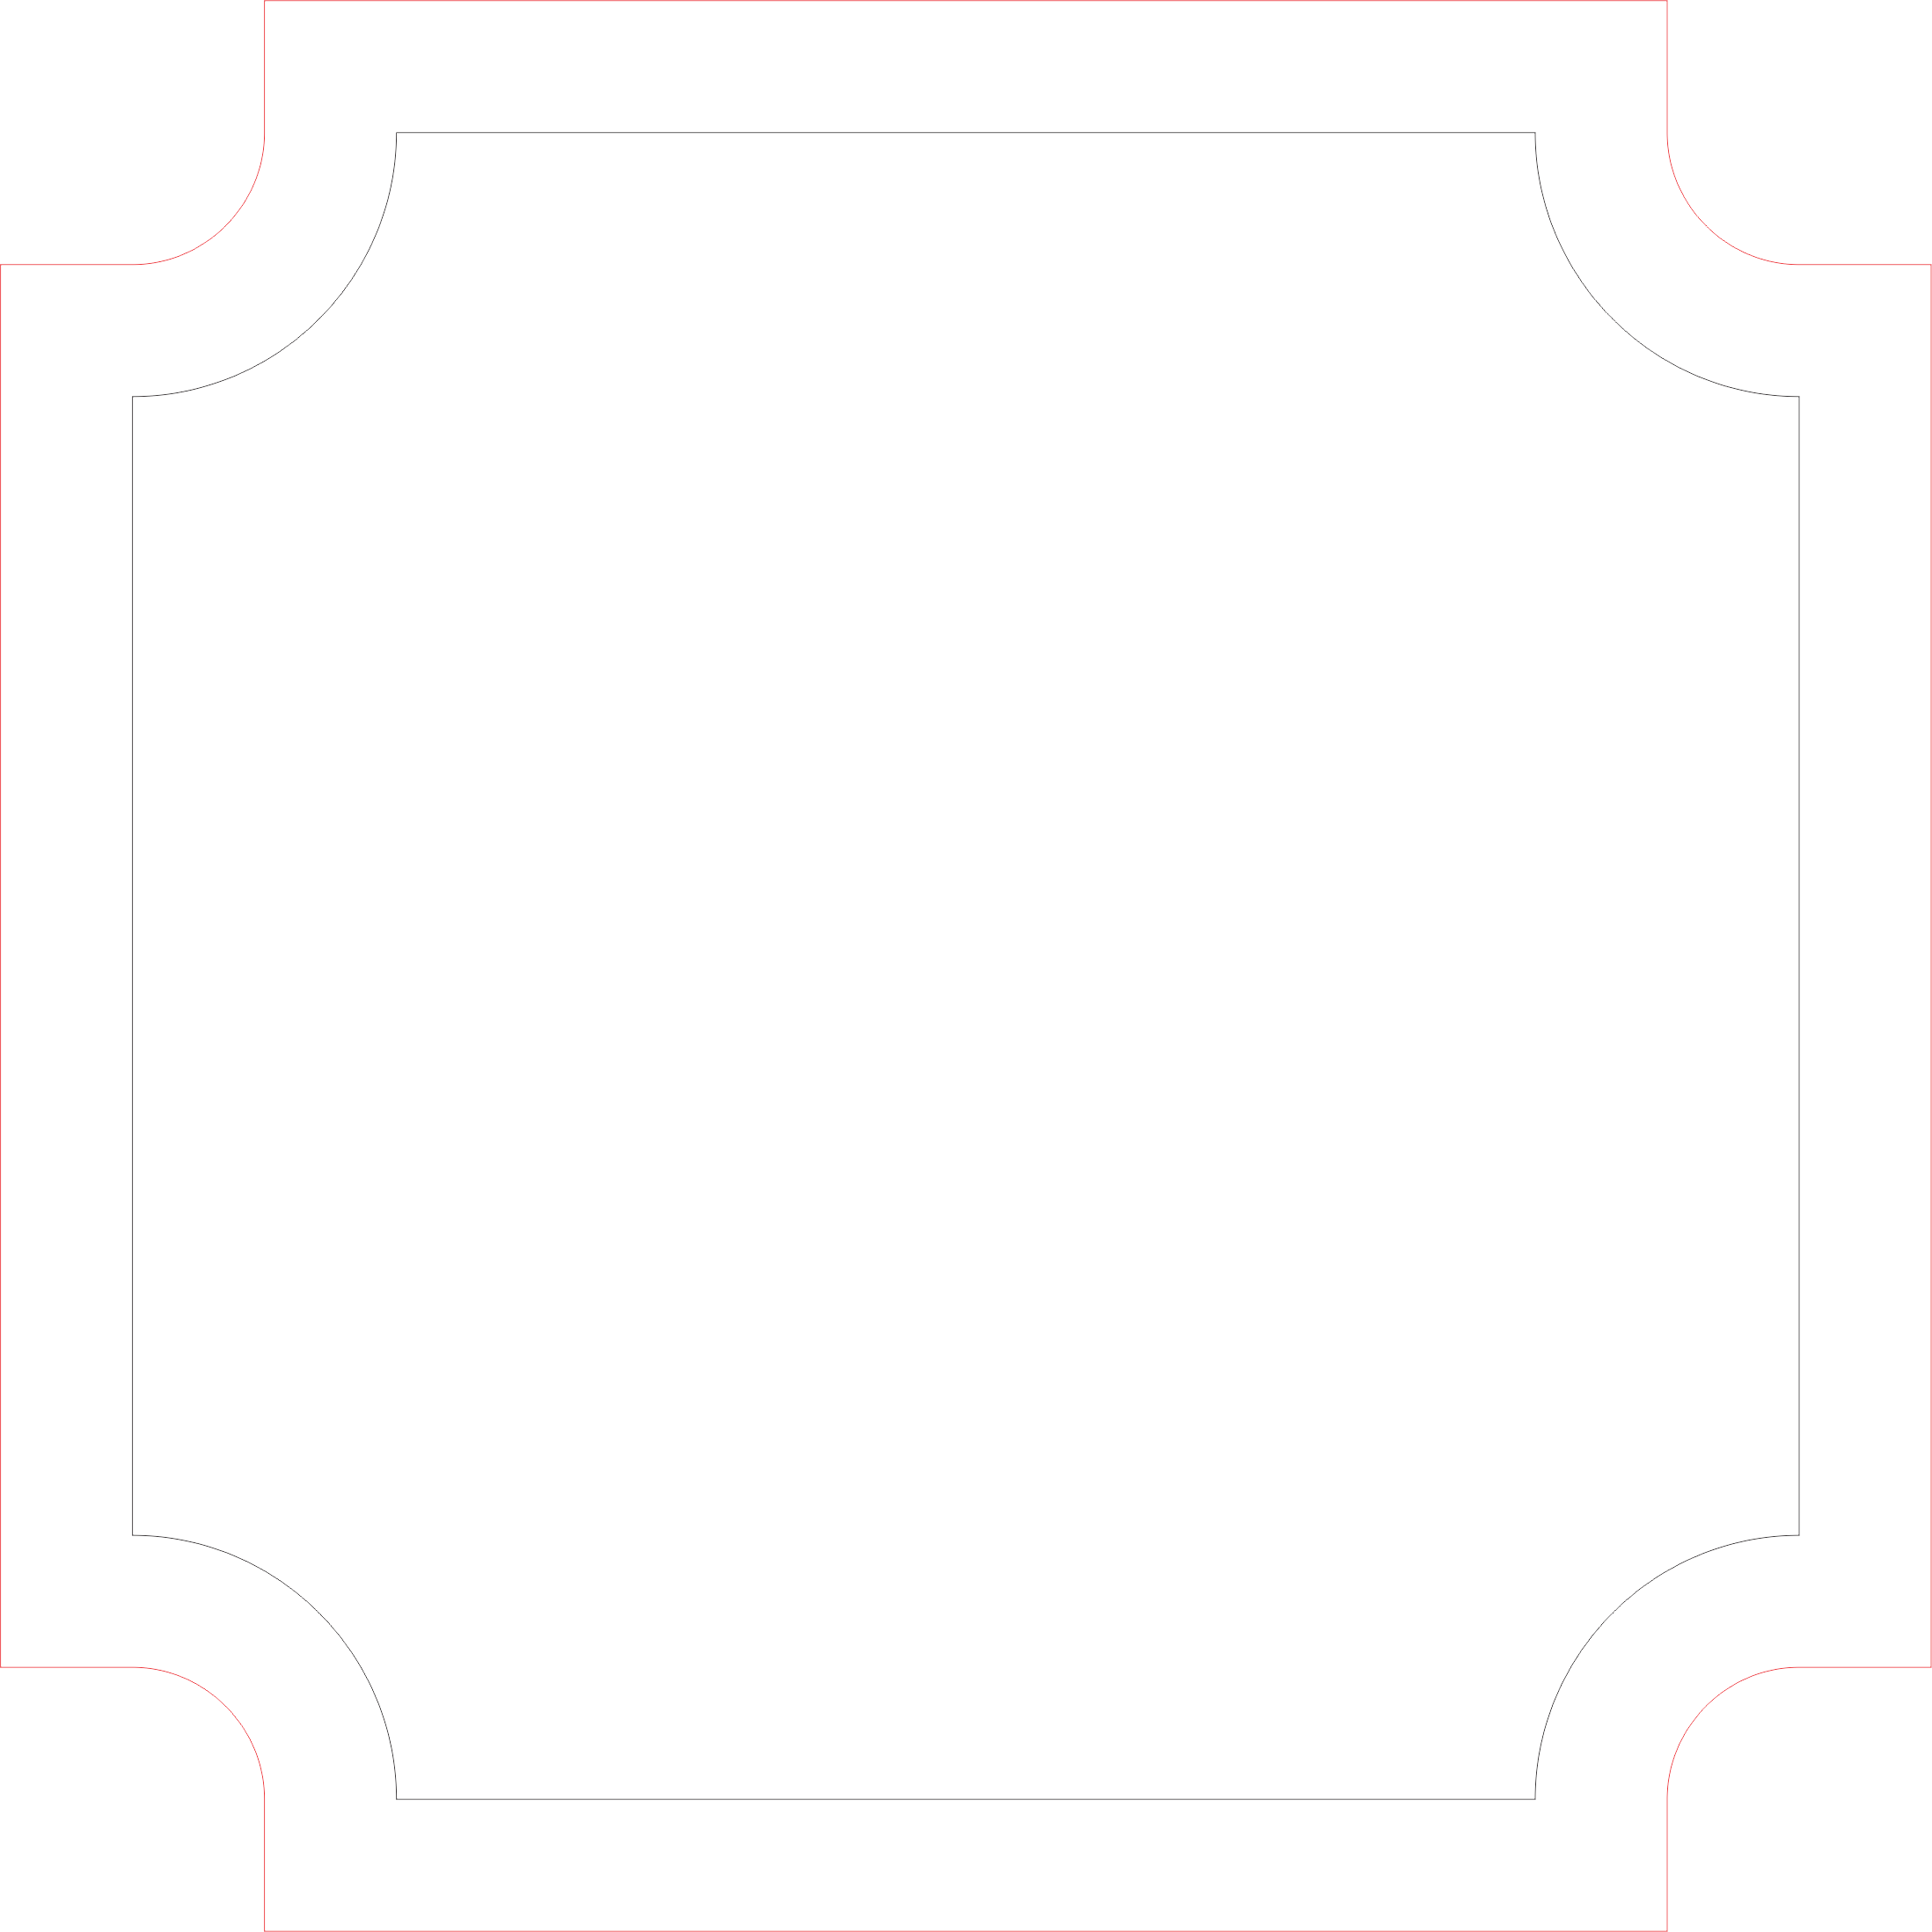 Add a picture corel. White frame png